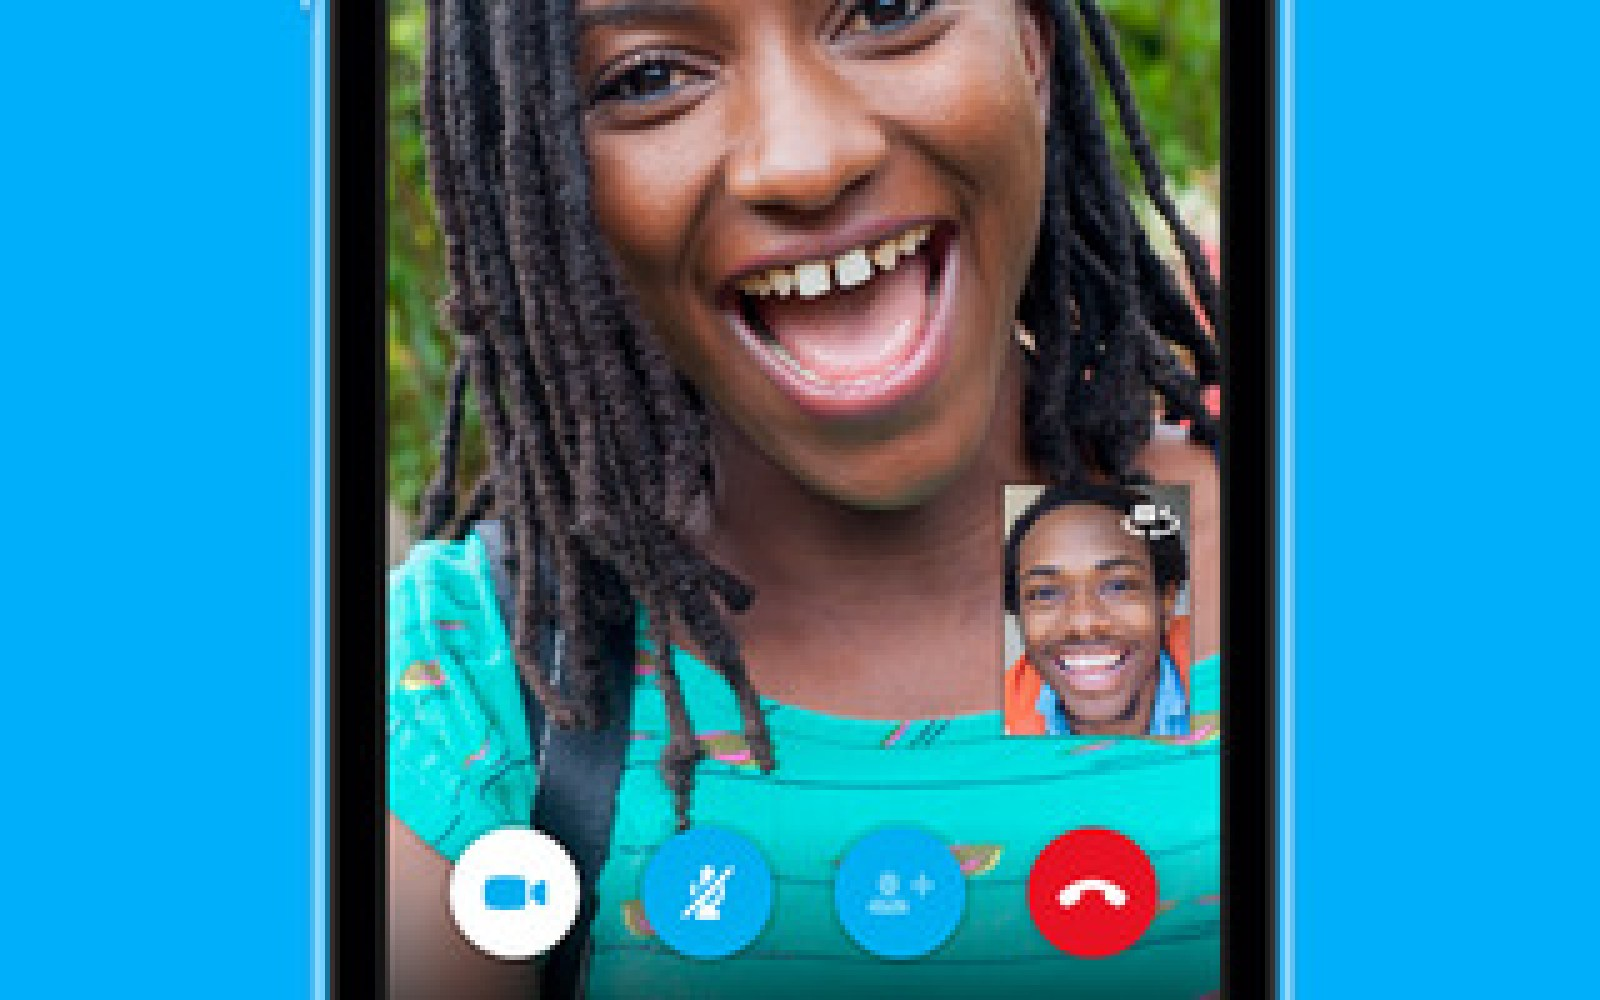 Skype app updated for iOS 8, includes interactive notifications for calls and messages